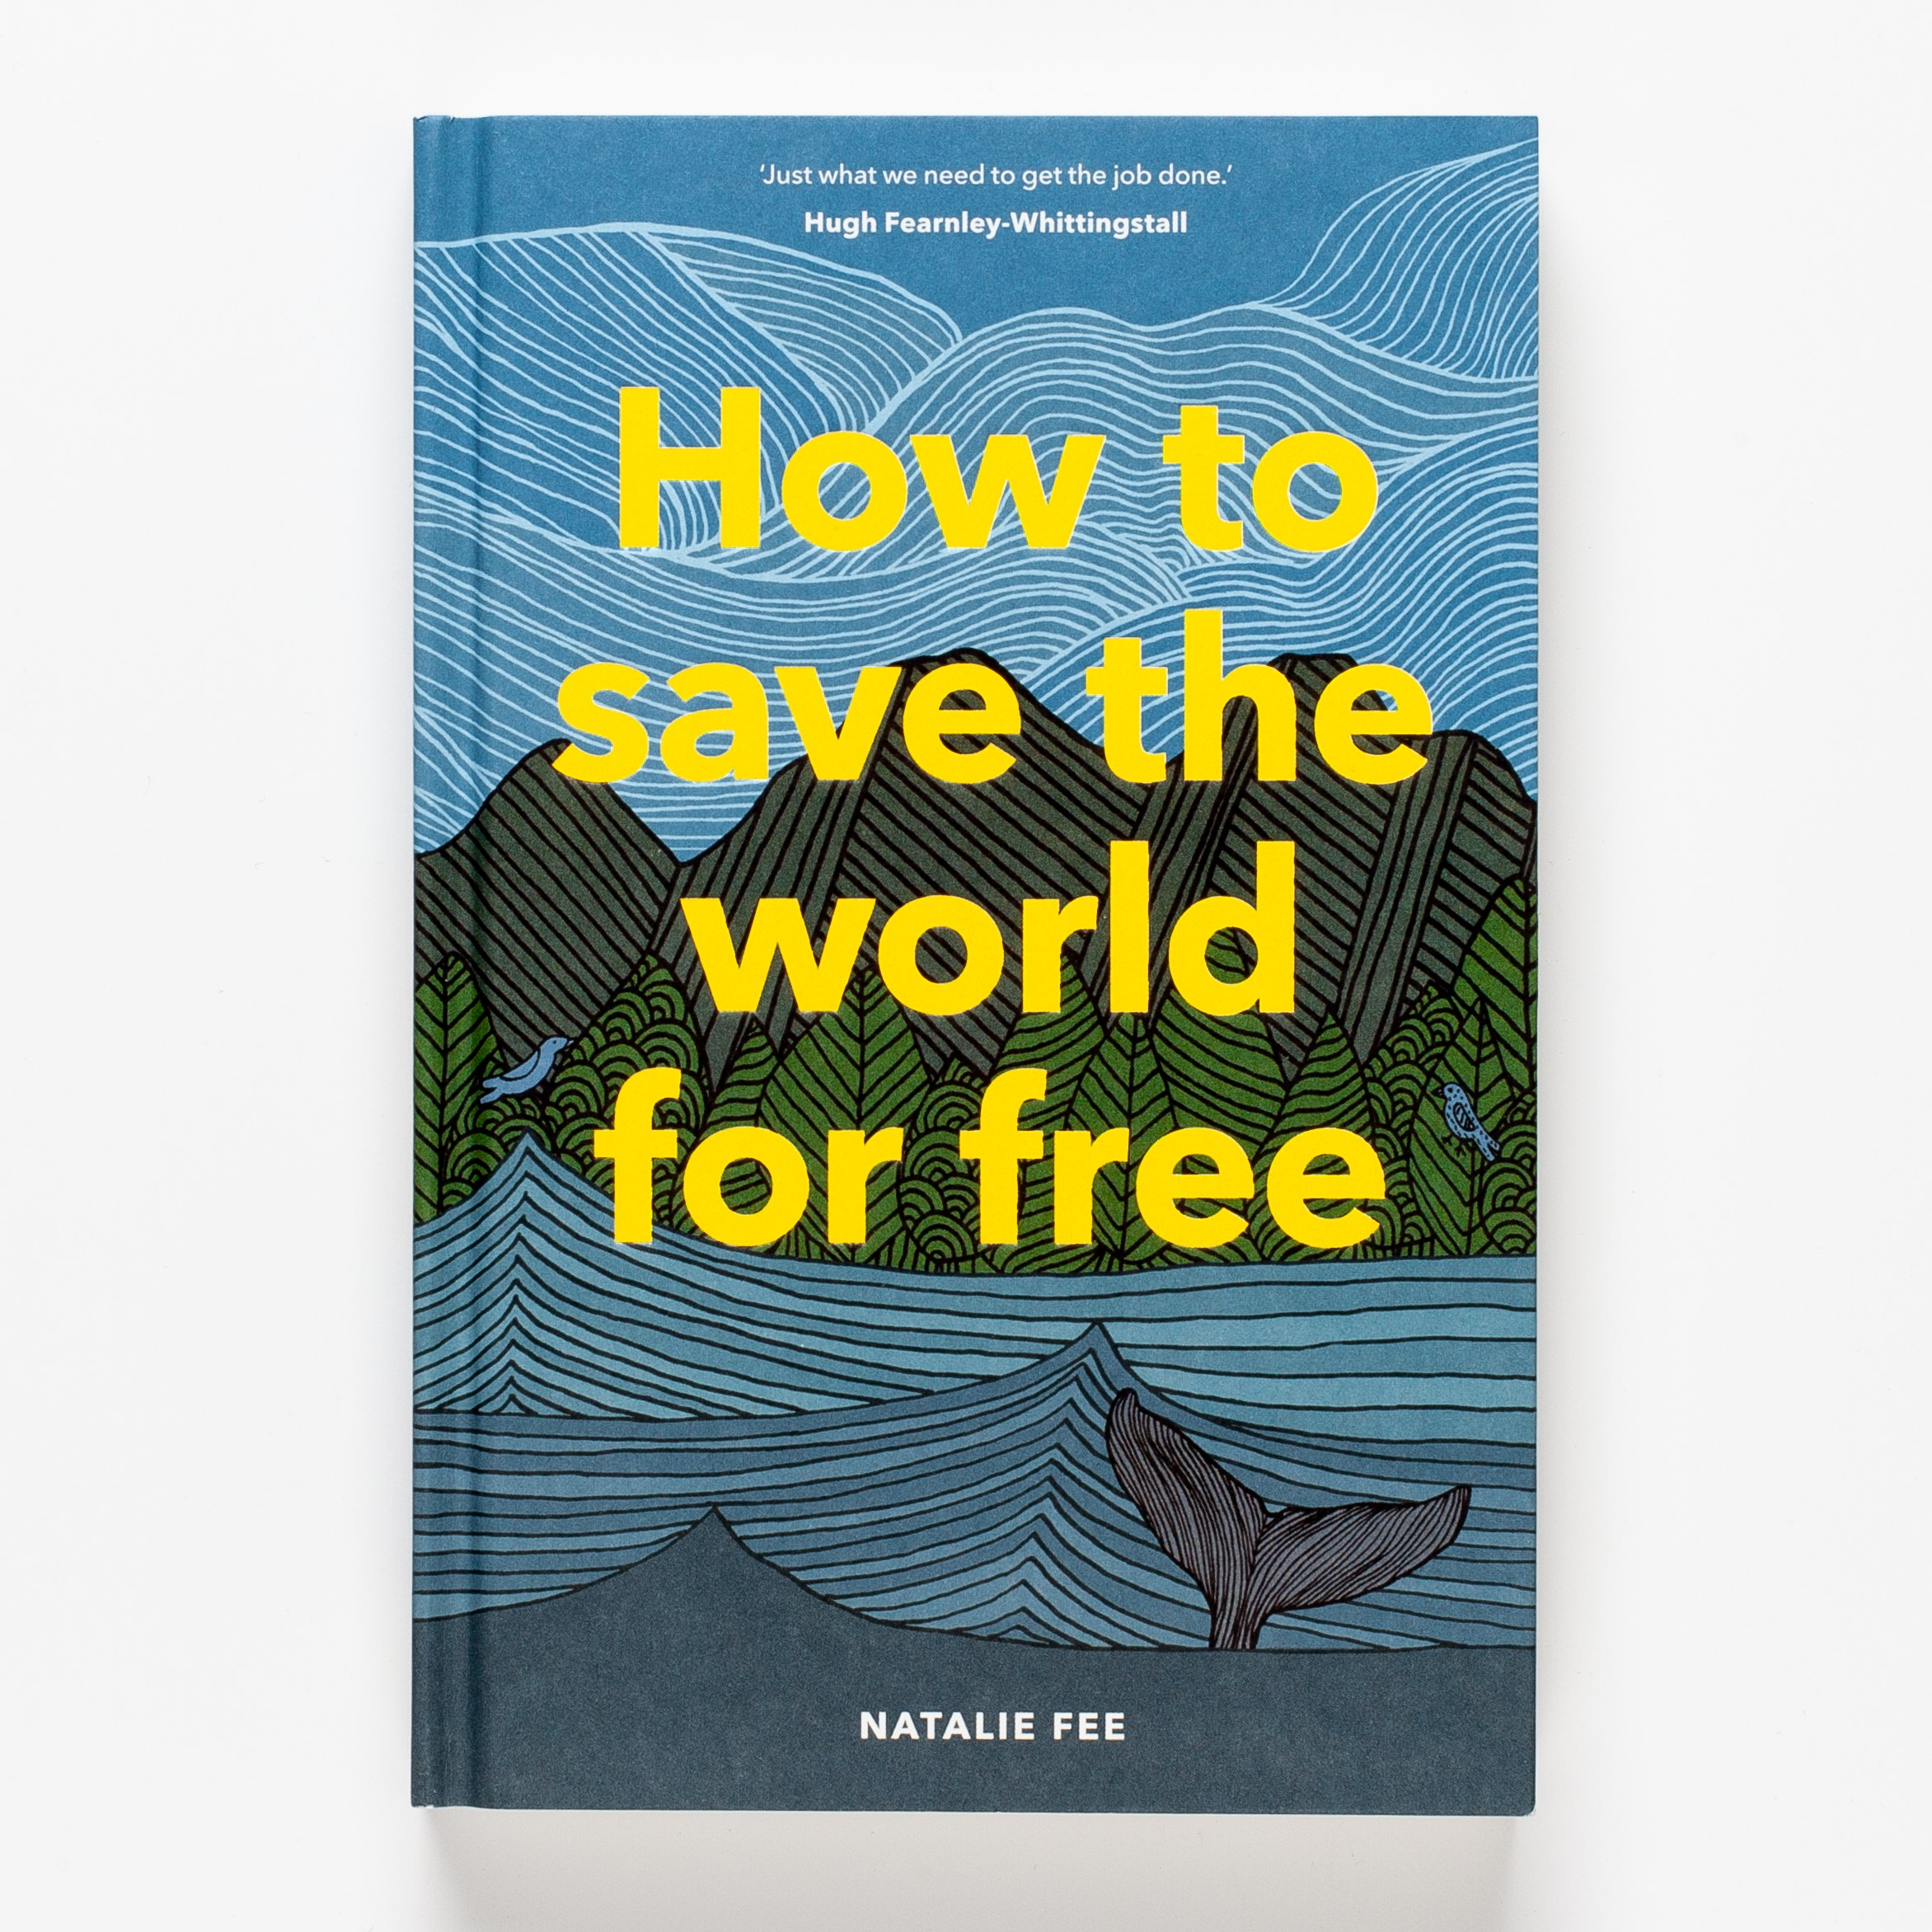 How to Save the World for Free, by Natalie Fée